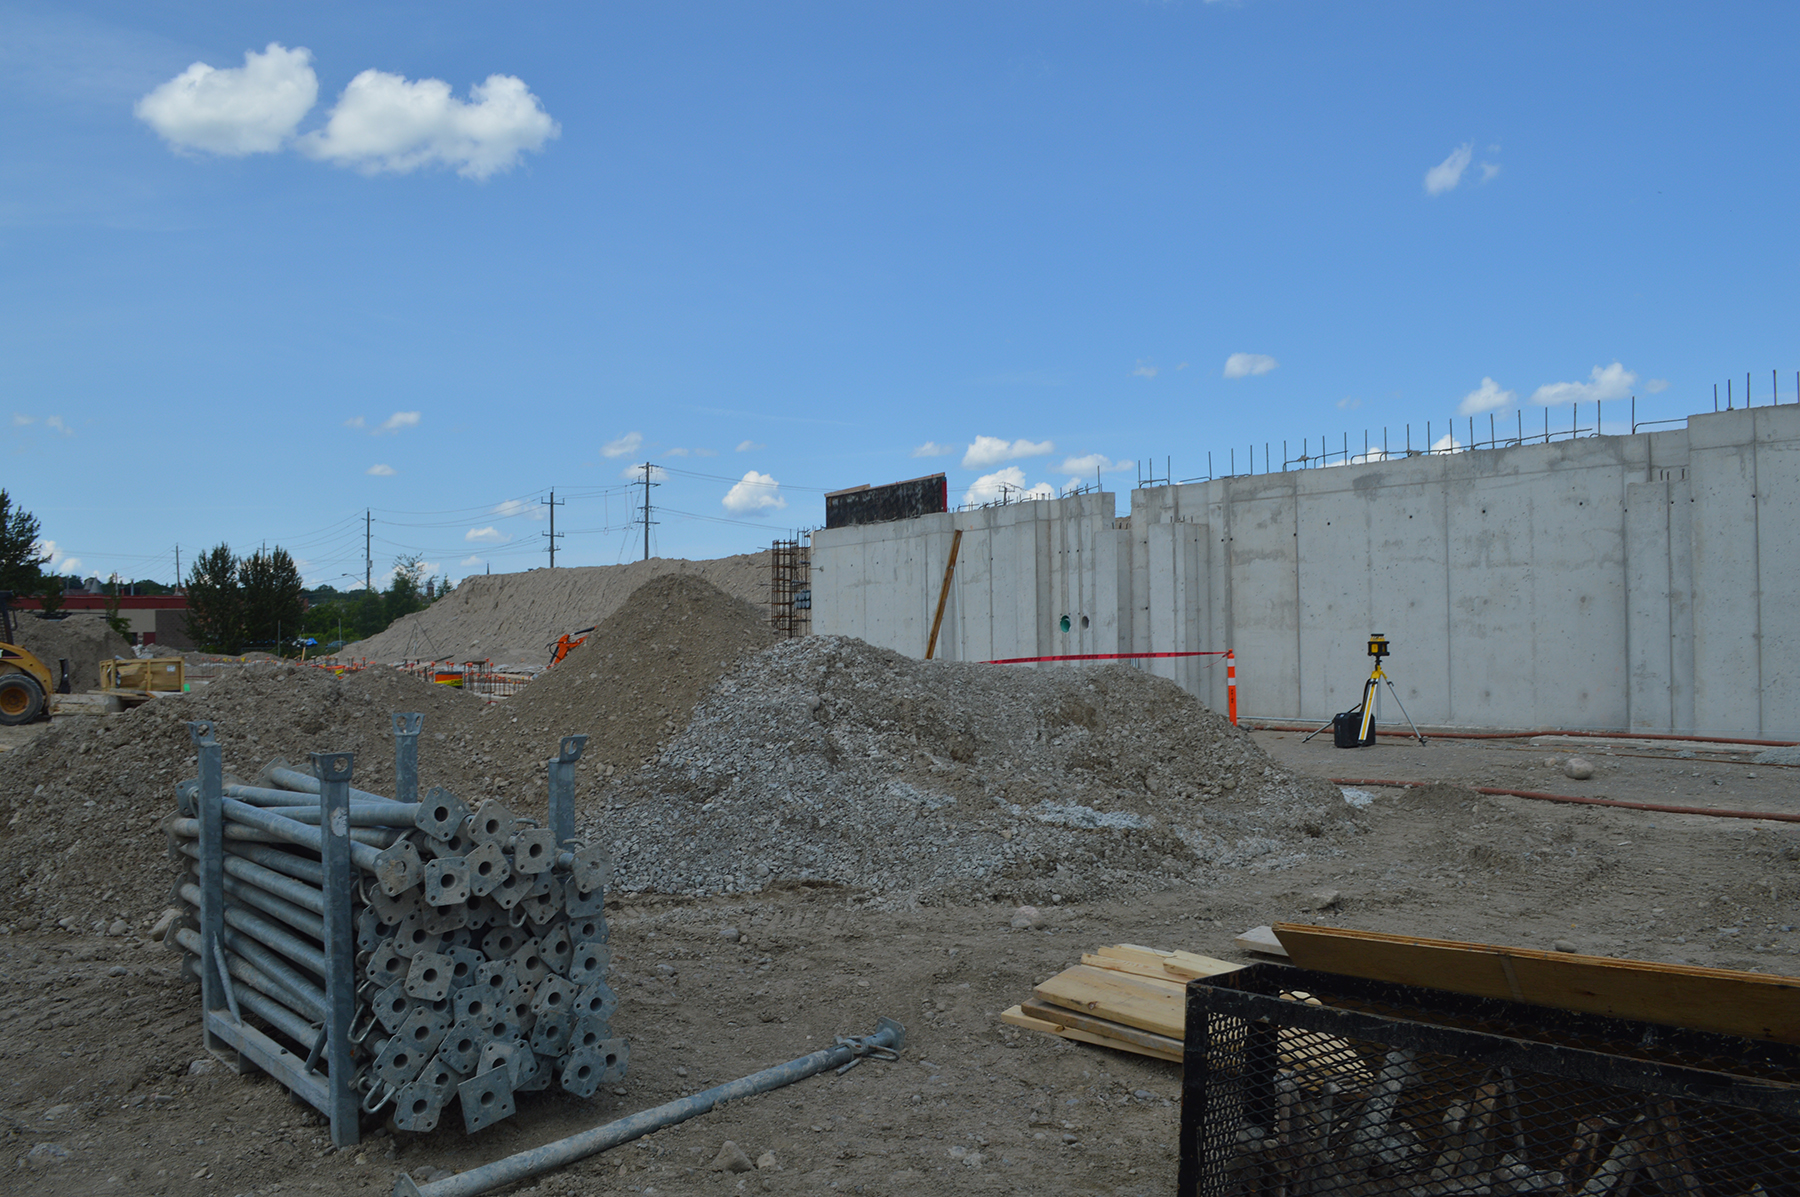 Construction work continues at Recreation Site